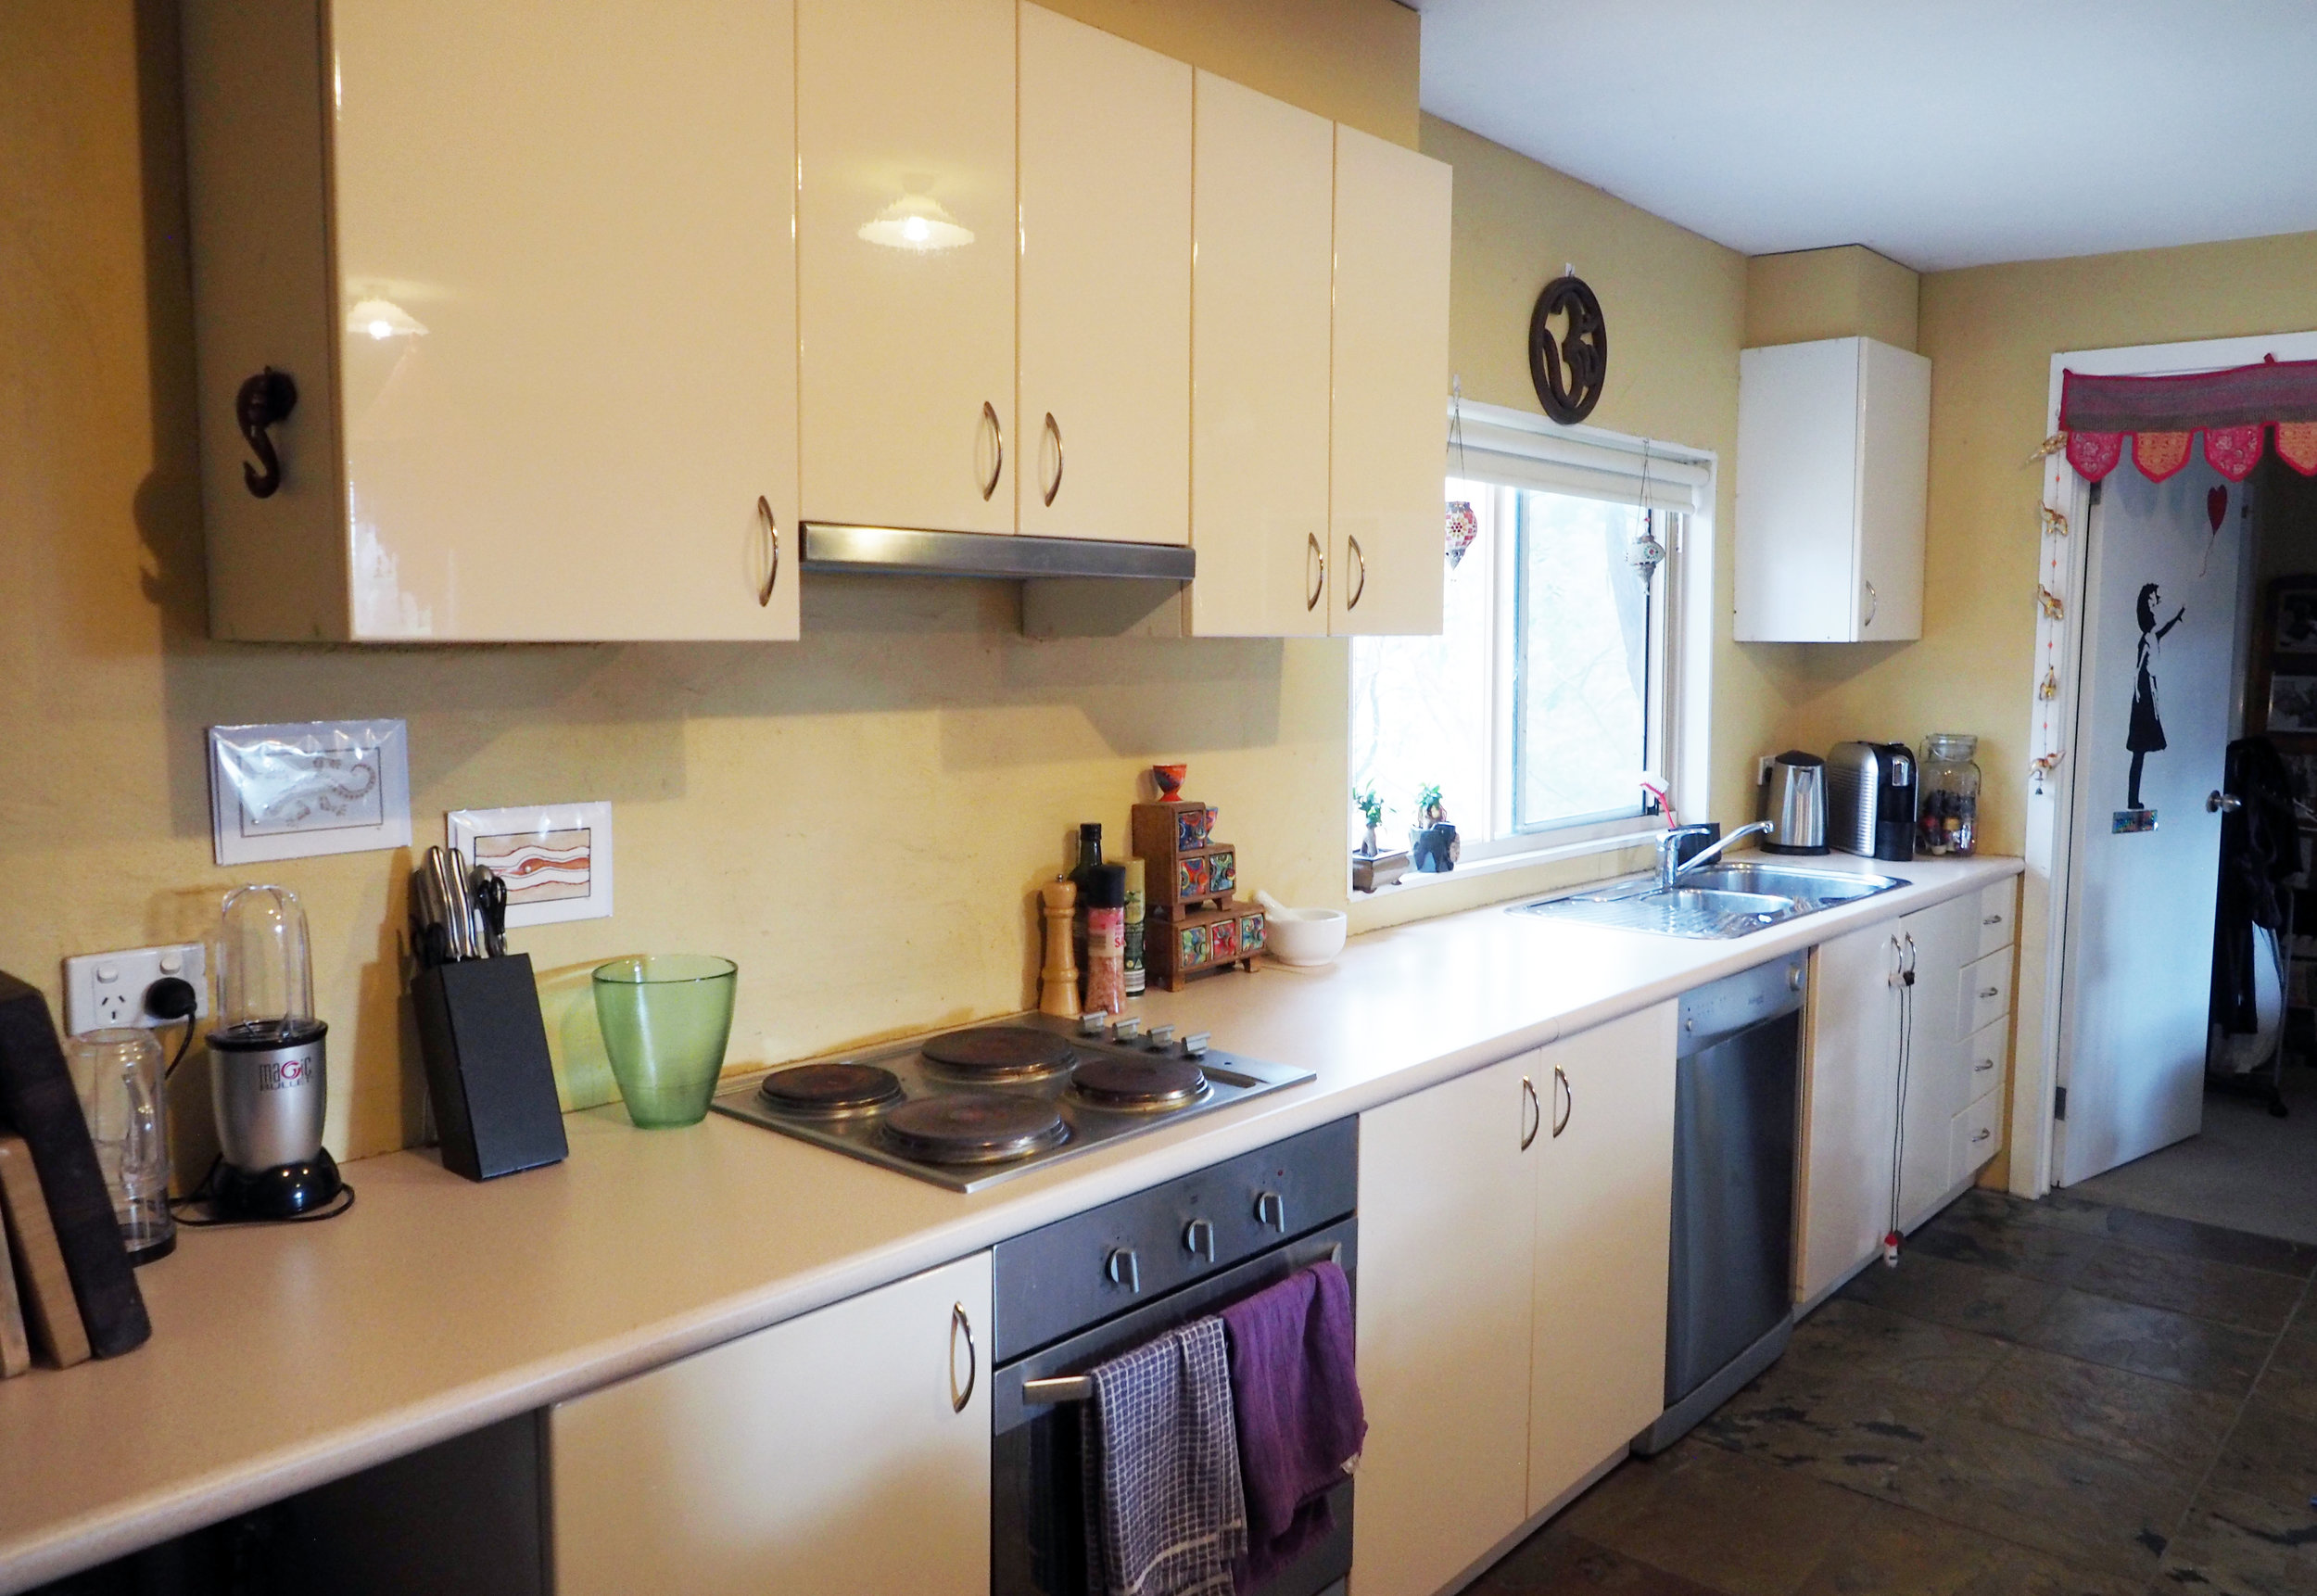 Kitchen makeover - transformed to an organised, calm and efficient space {The Organised You}